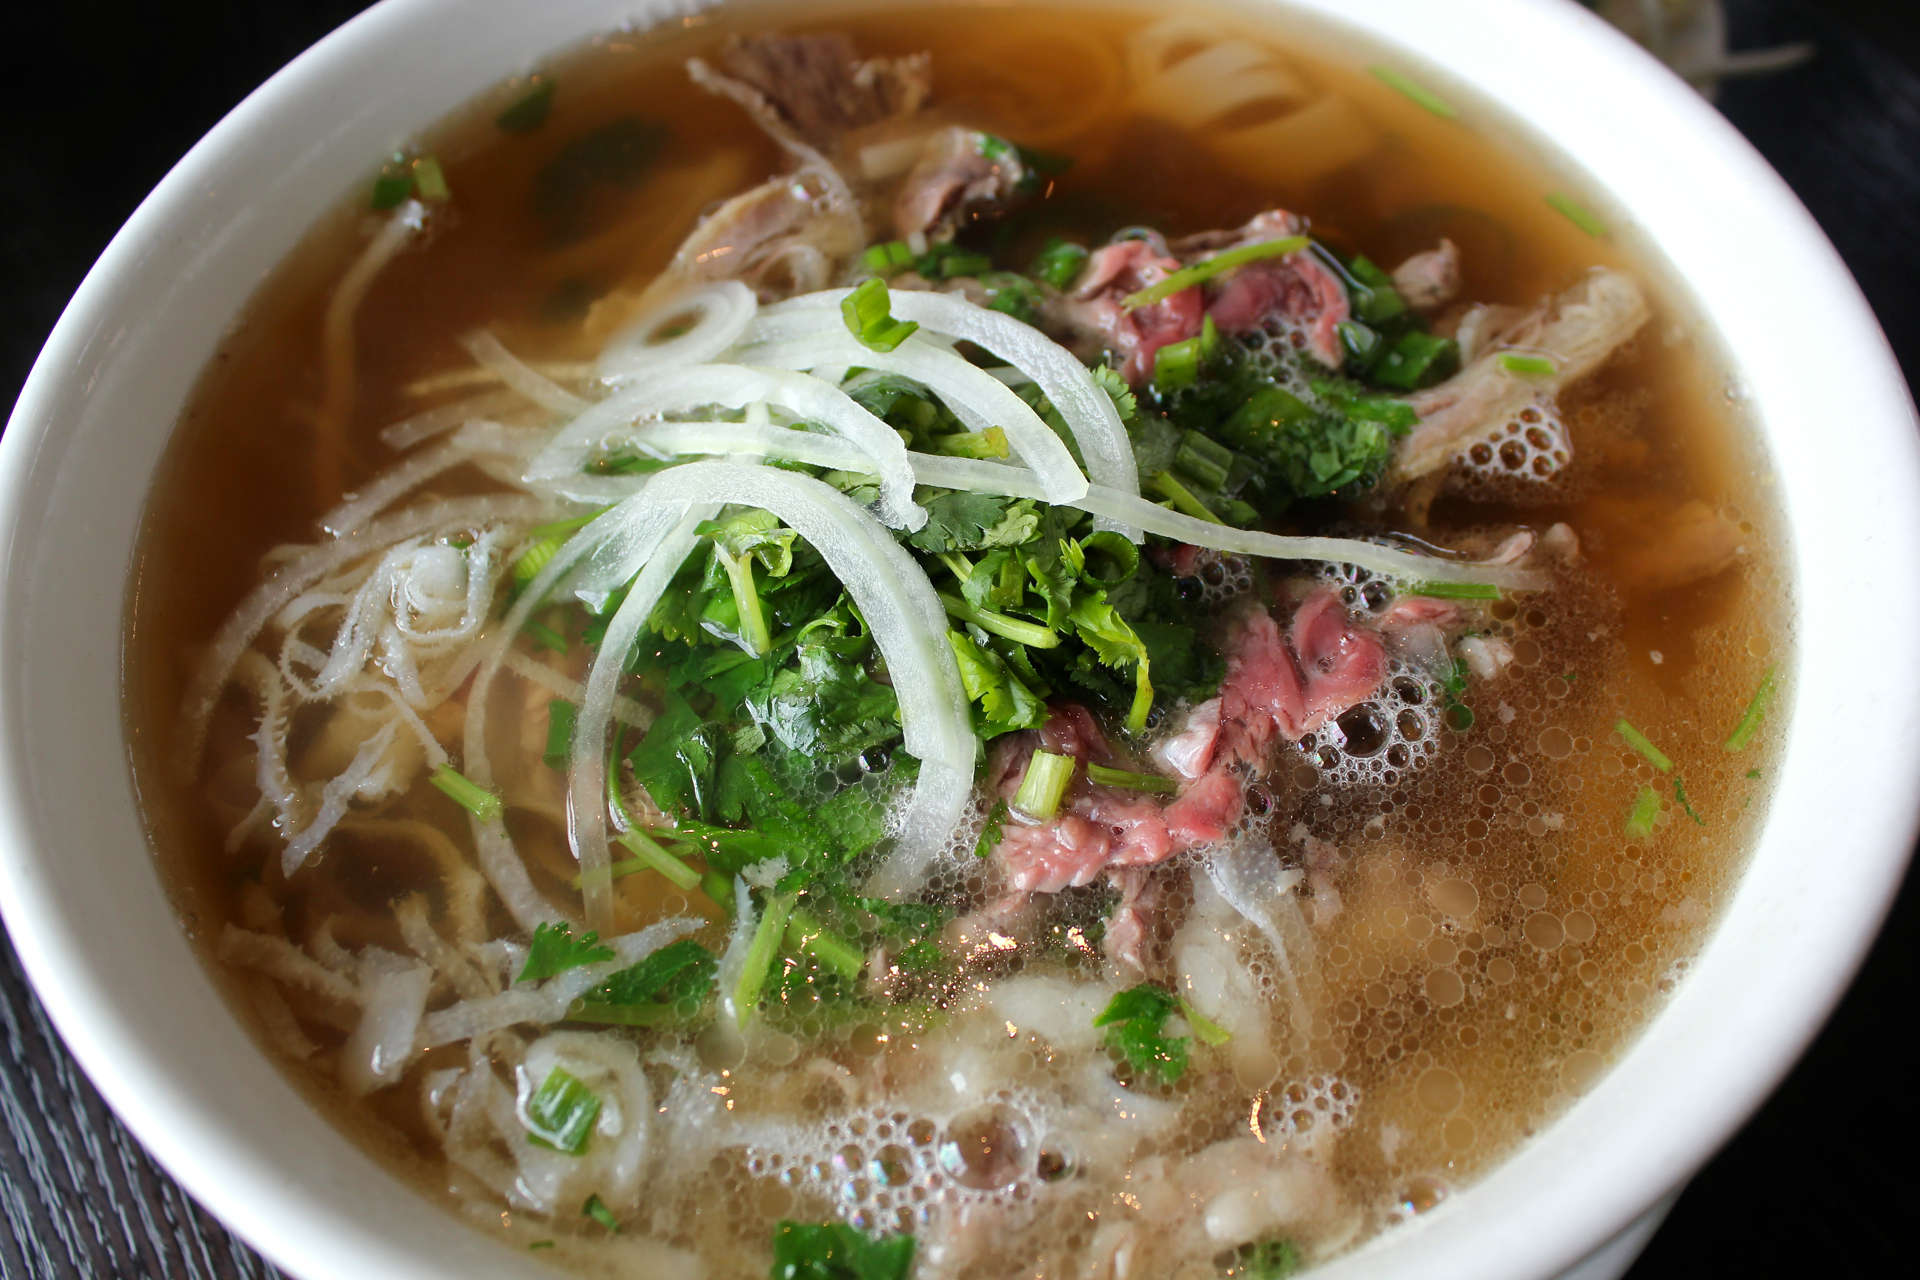 Pho dac biet at Pho Factory with rare filet mignon, well-done flank, brisket, tendon and tripe.